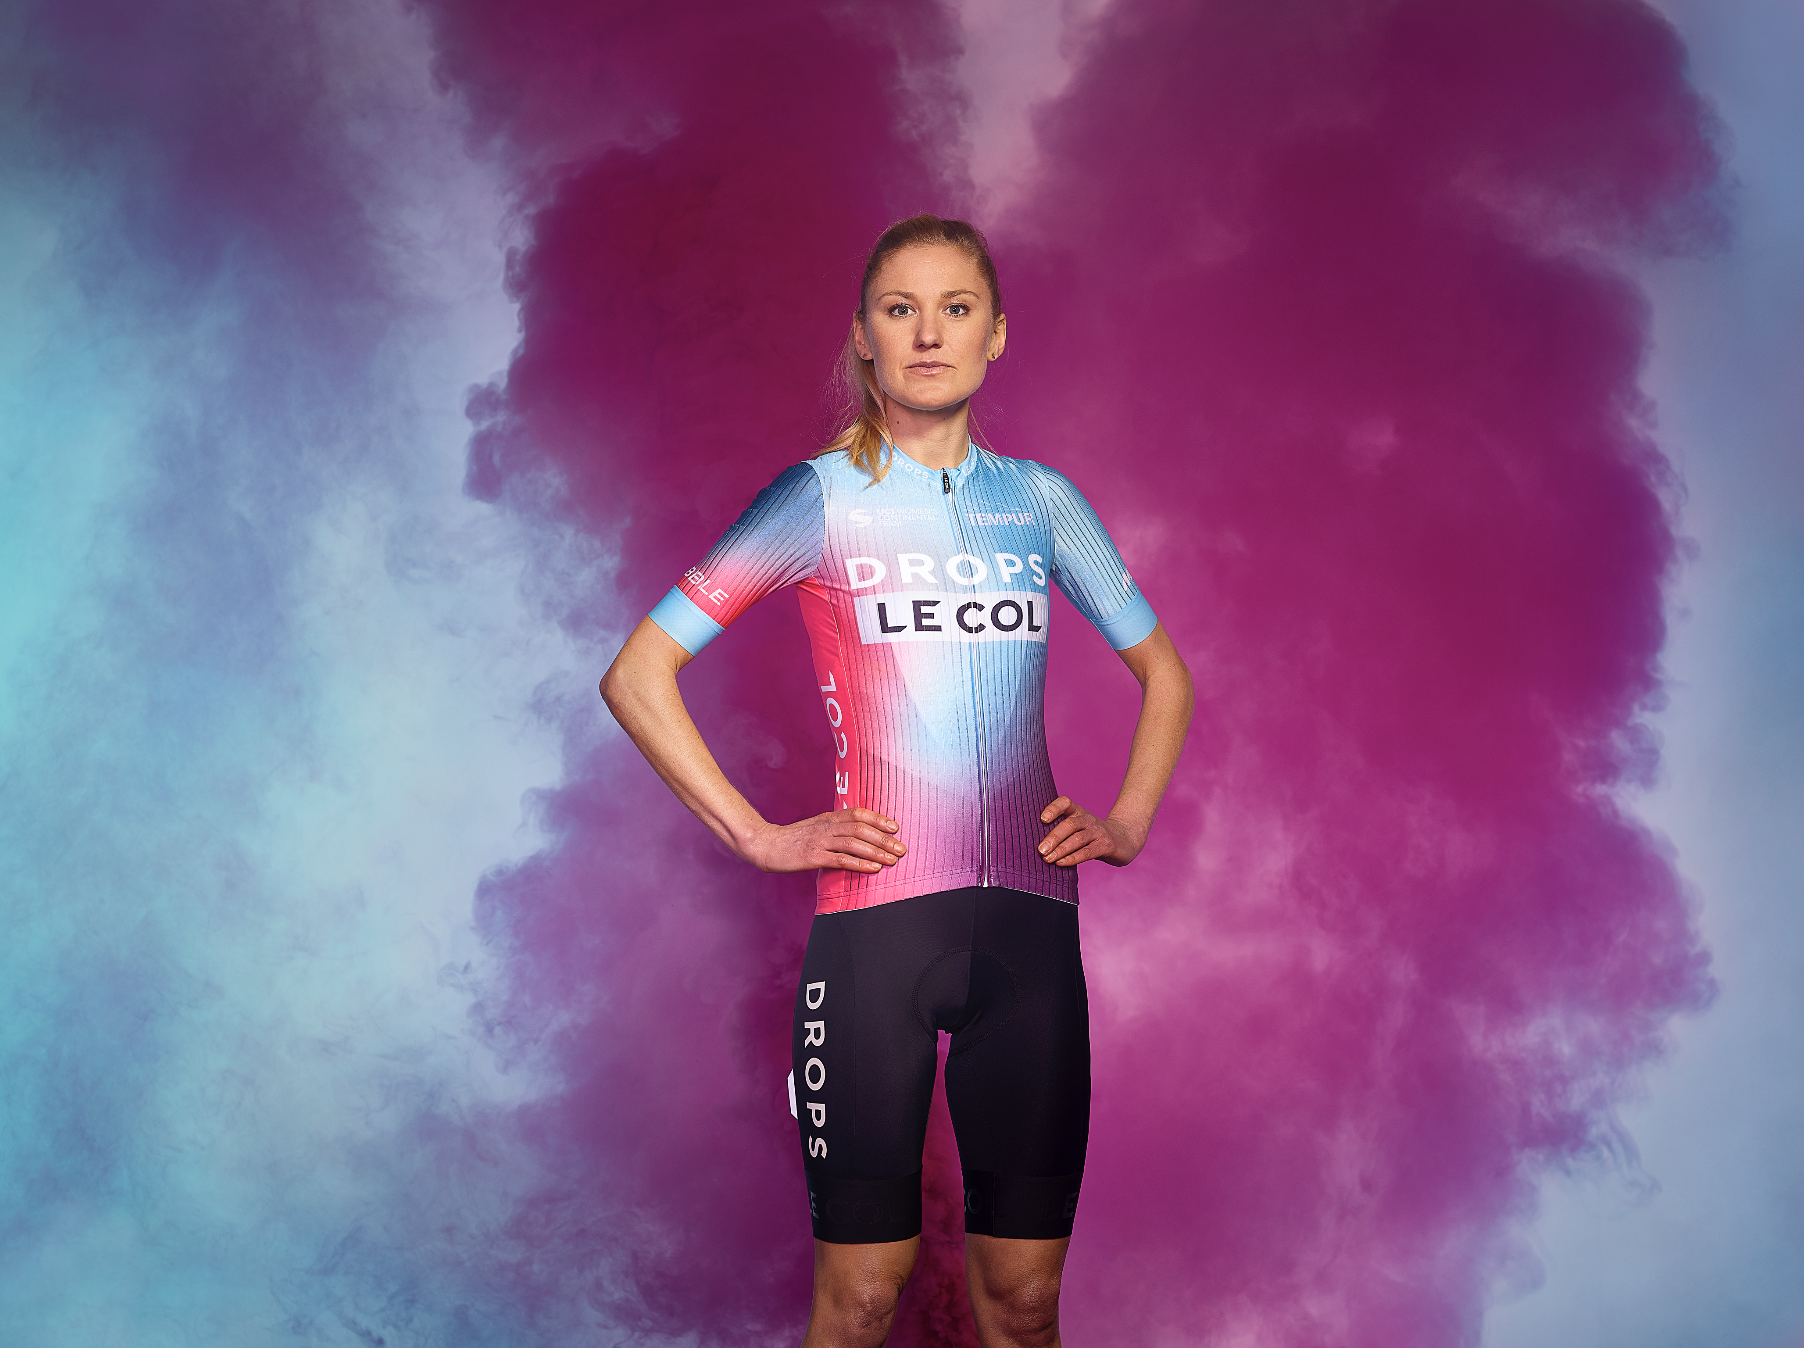 A New Vision To Colour The Road – Le Col Unveil Vibrant and Technical Kit for DROPS Le Col Team